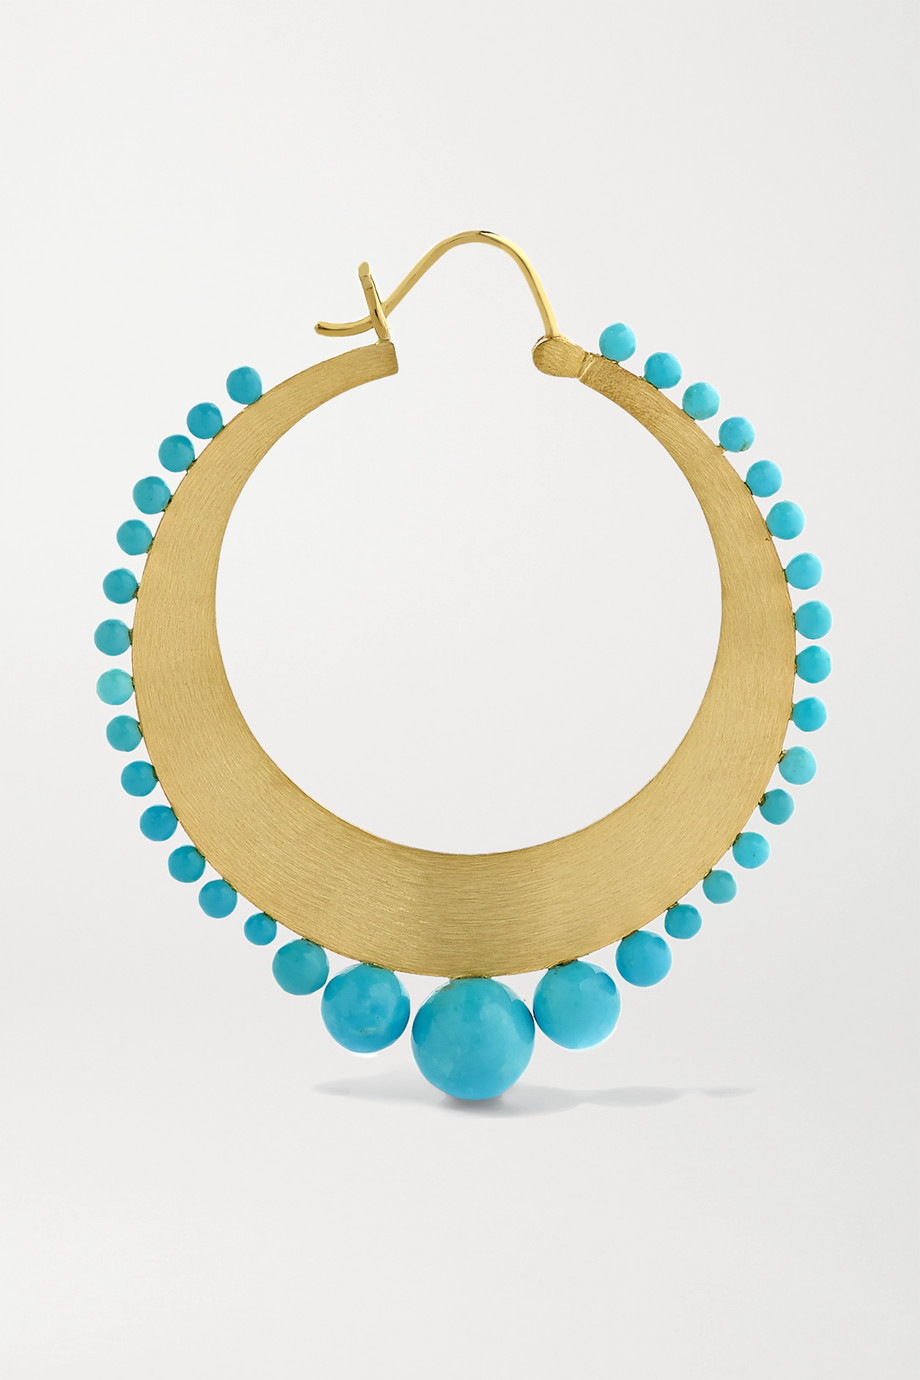 Irene Neuwirth Gumball 18-karat gold turquoise hoop earrings